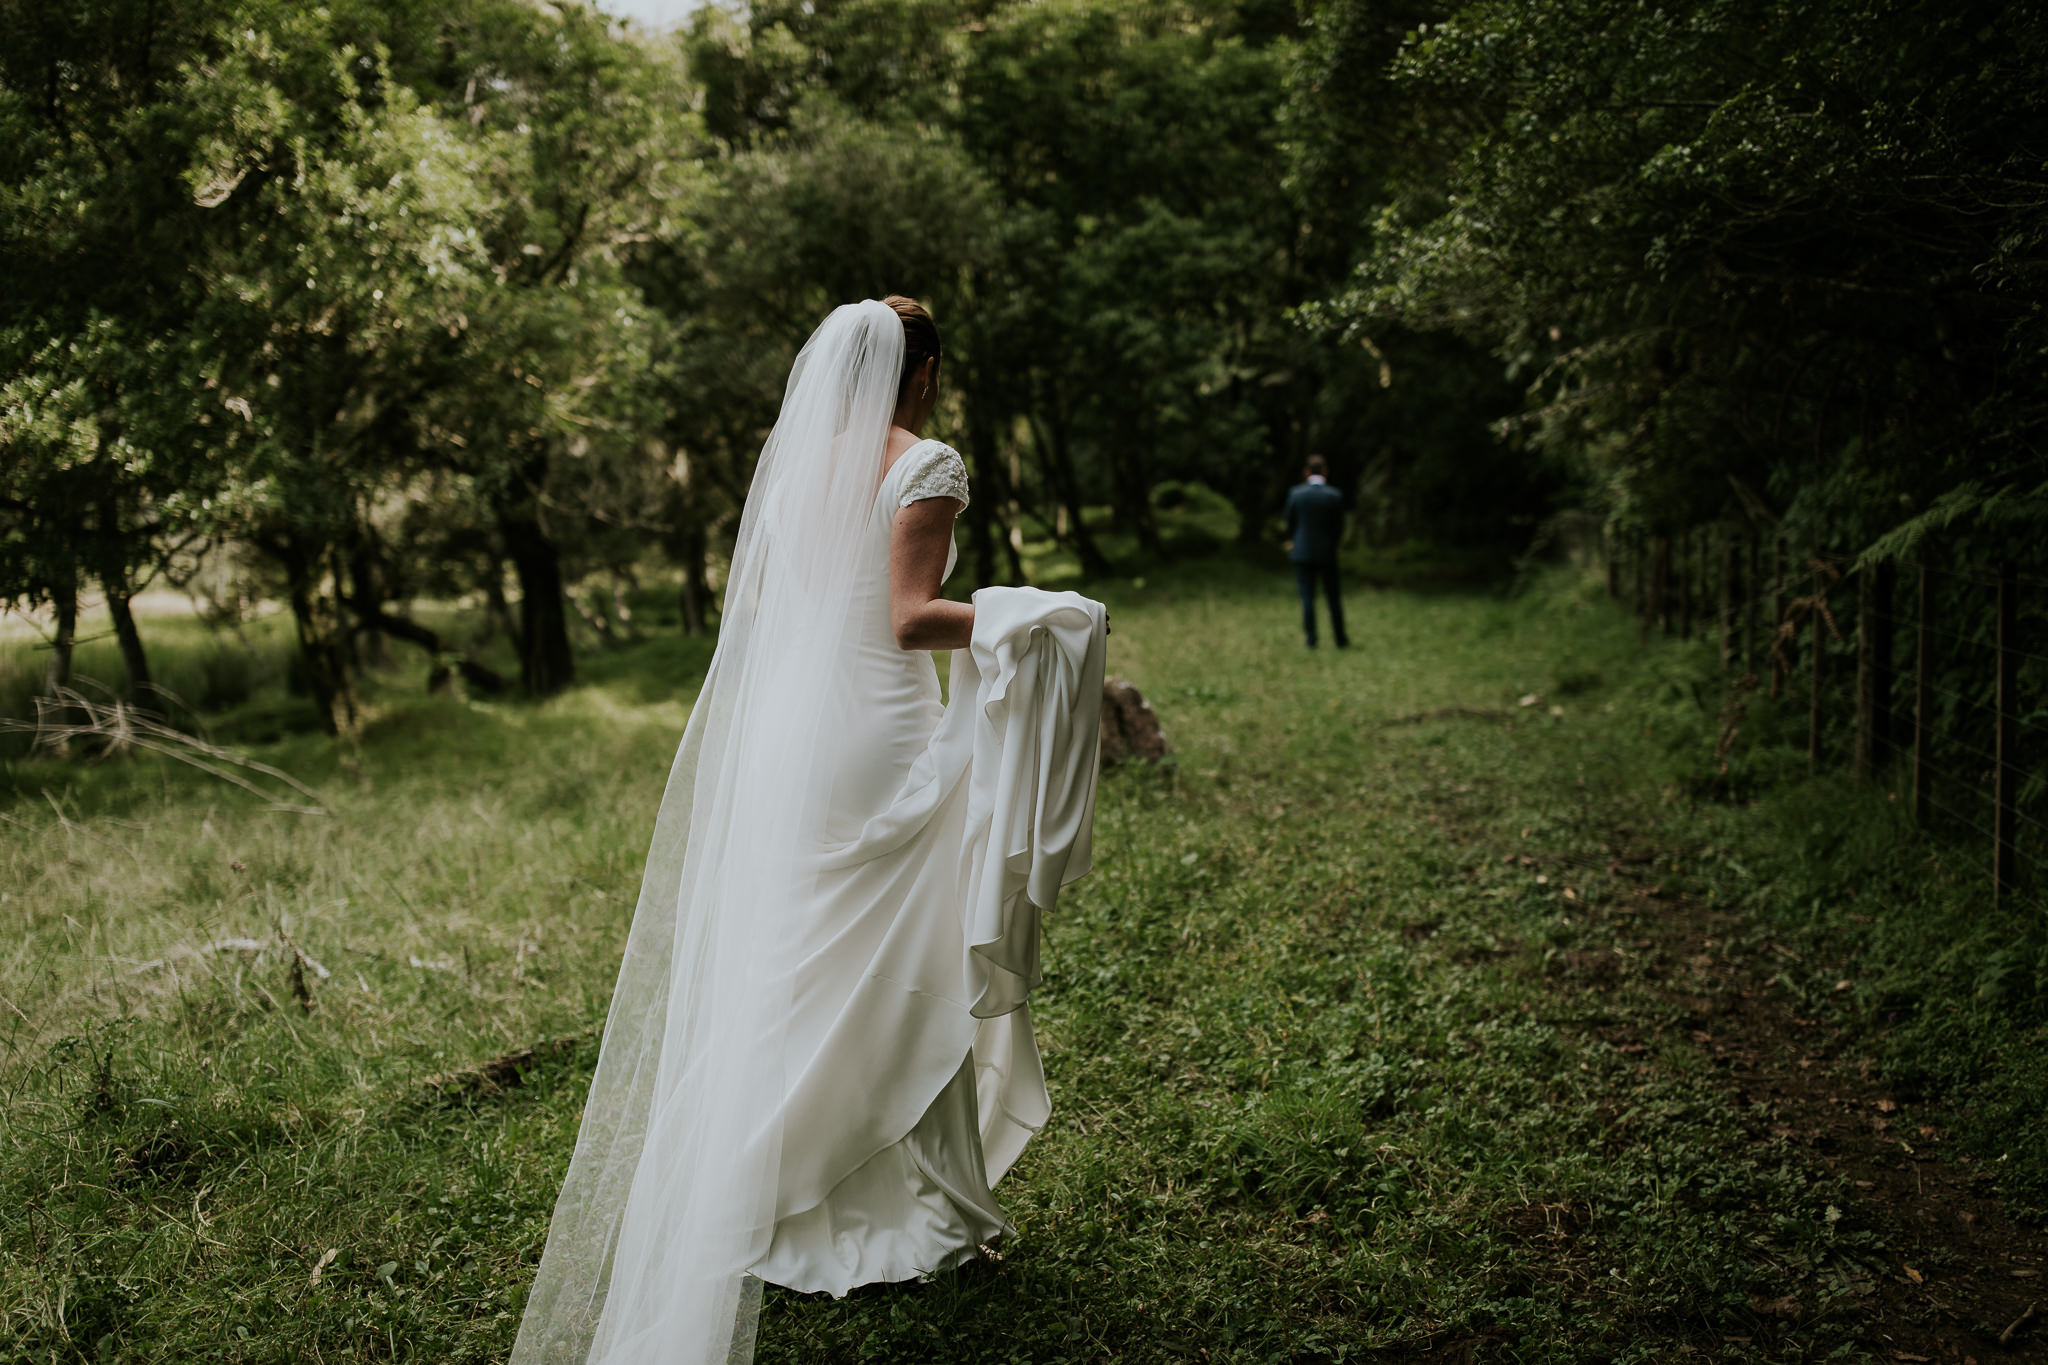 Kiwi bride walking towards groom carrying her wedding dress during first look at New Zealand farm